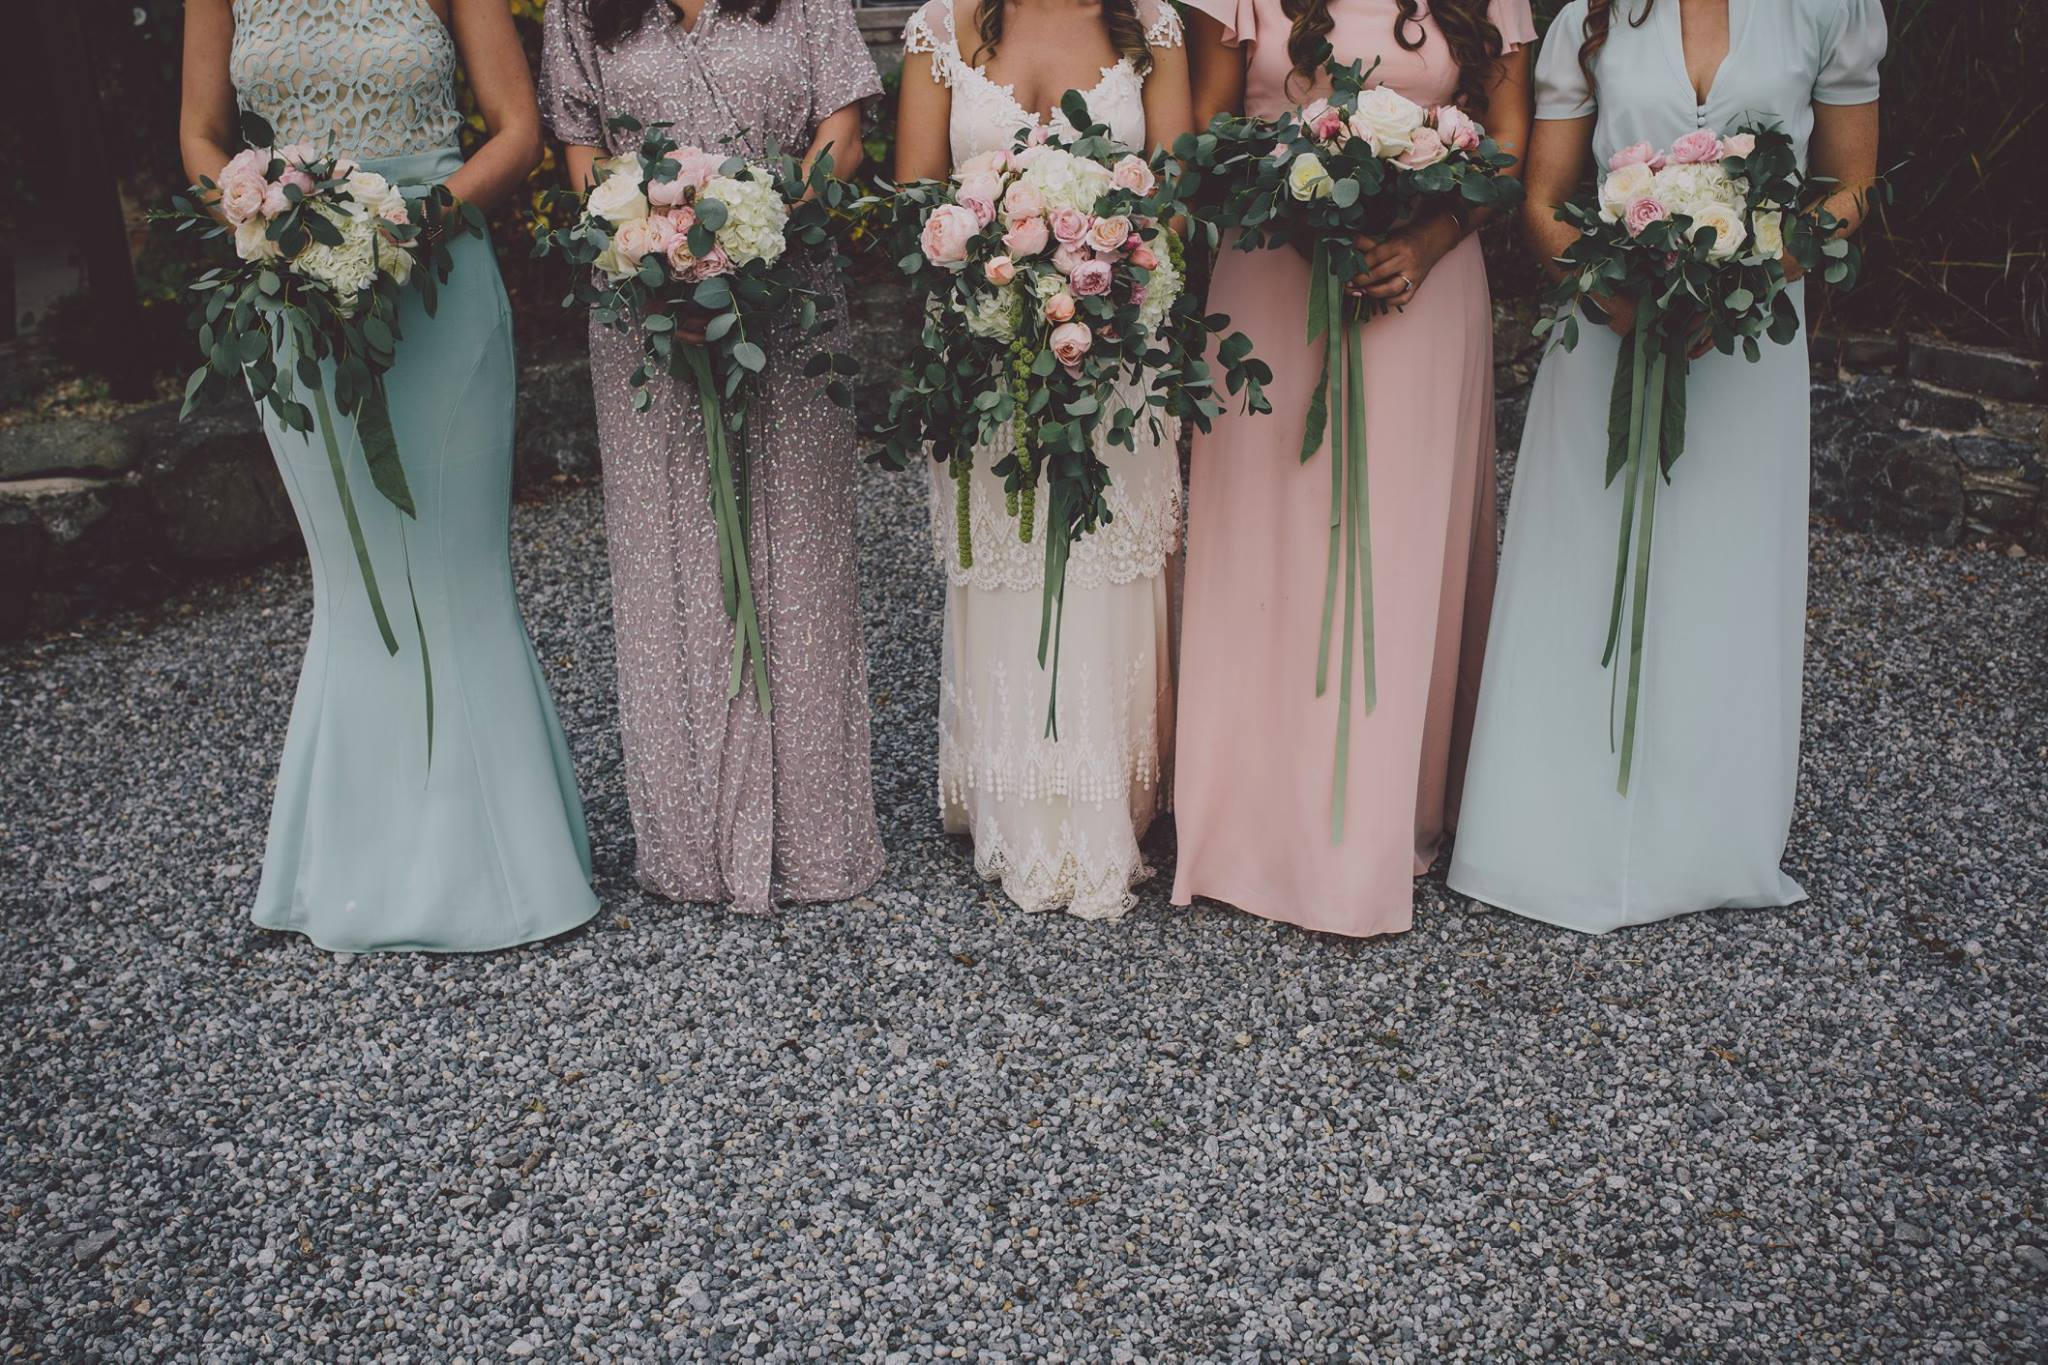 10 Wedding Trends You Need To Ditch For 2016